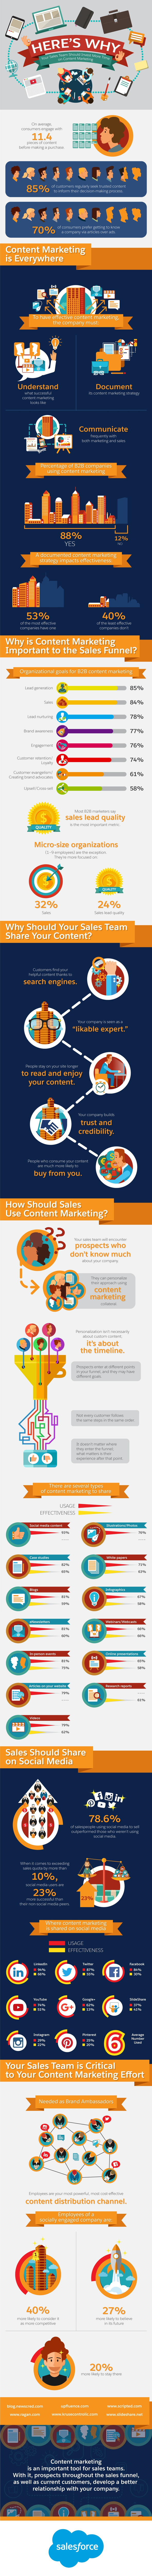 content-marketing-final.jpg